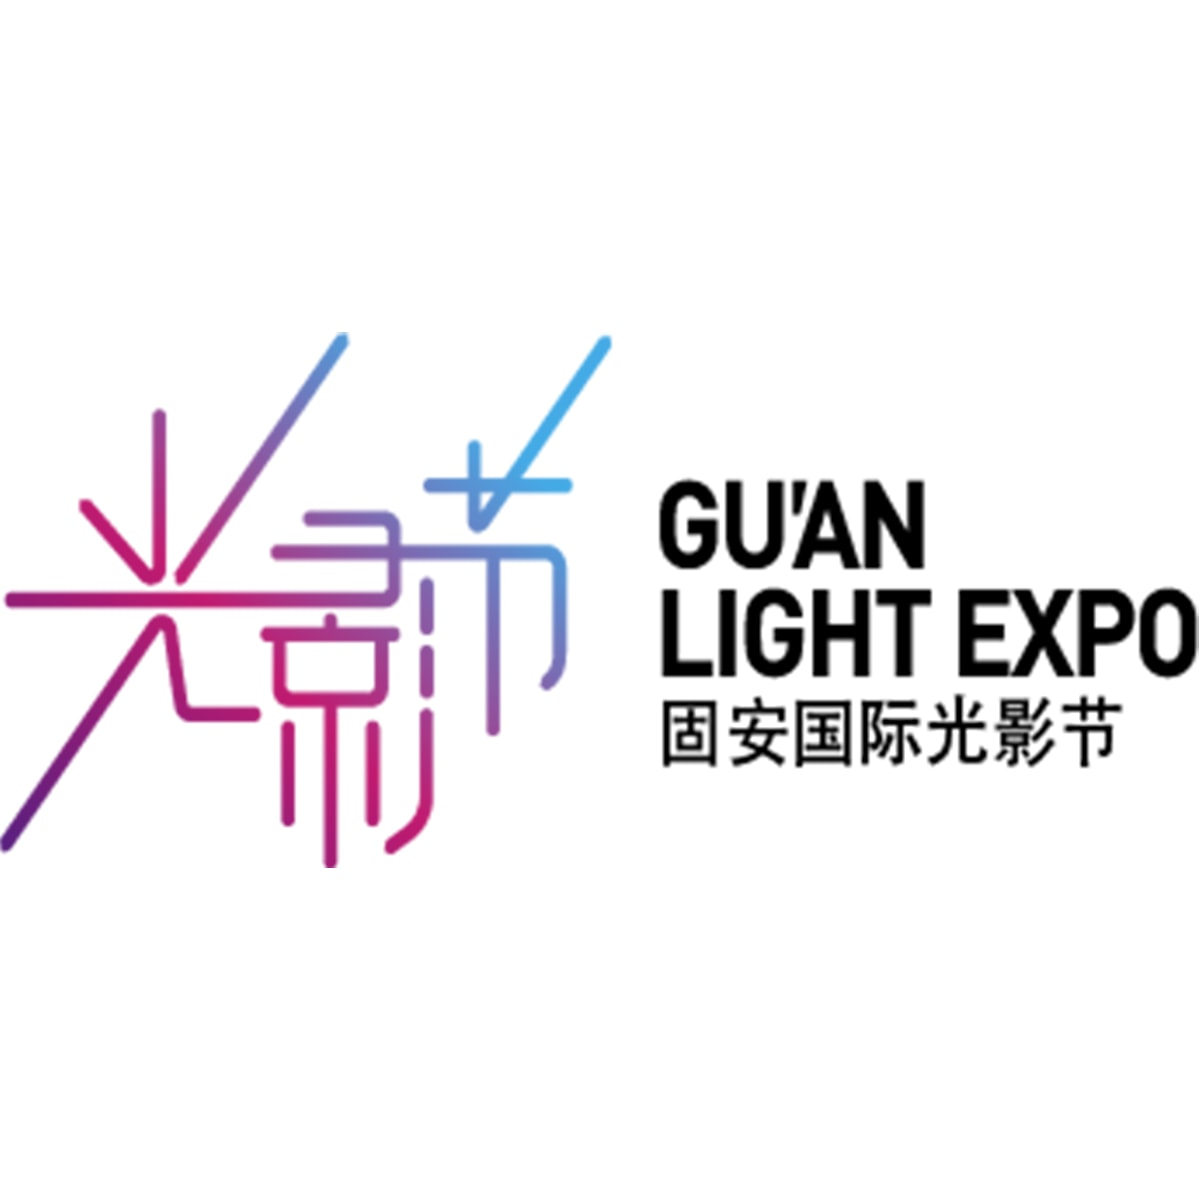 GU'an, Light Expo